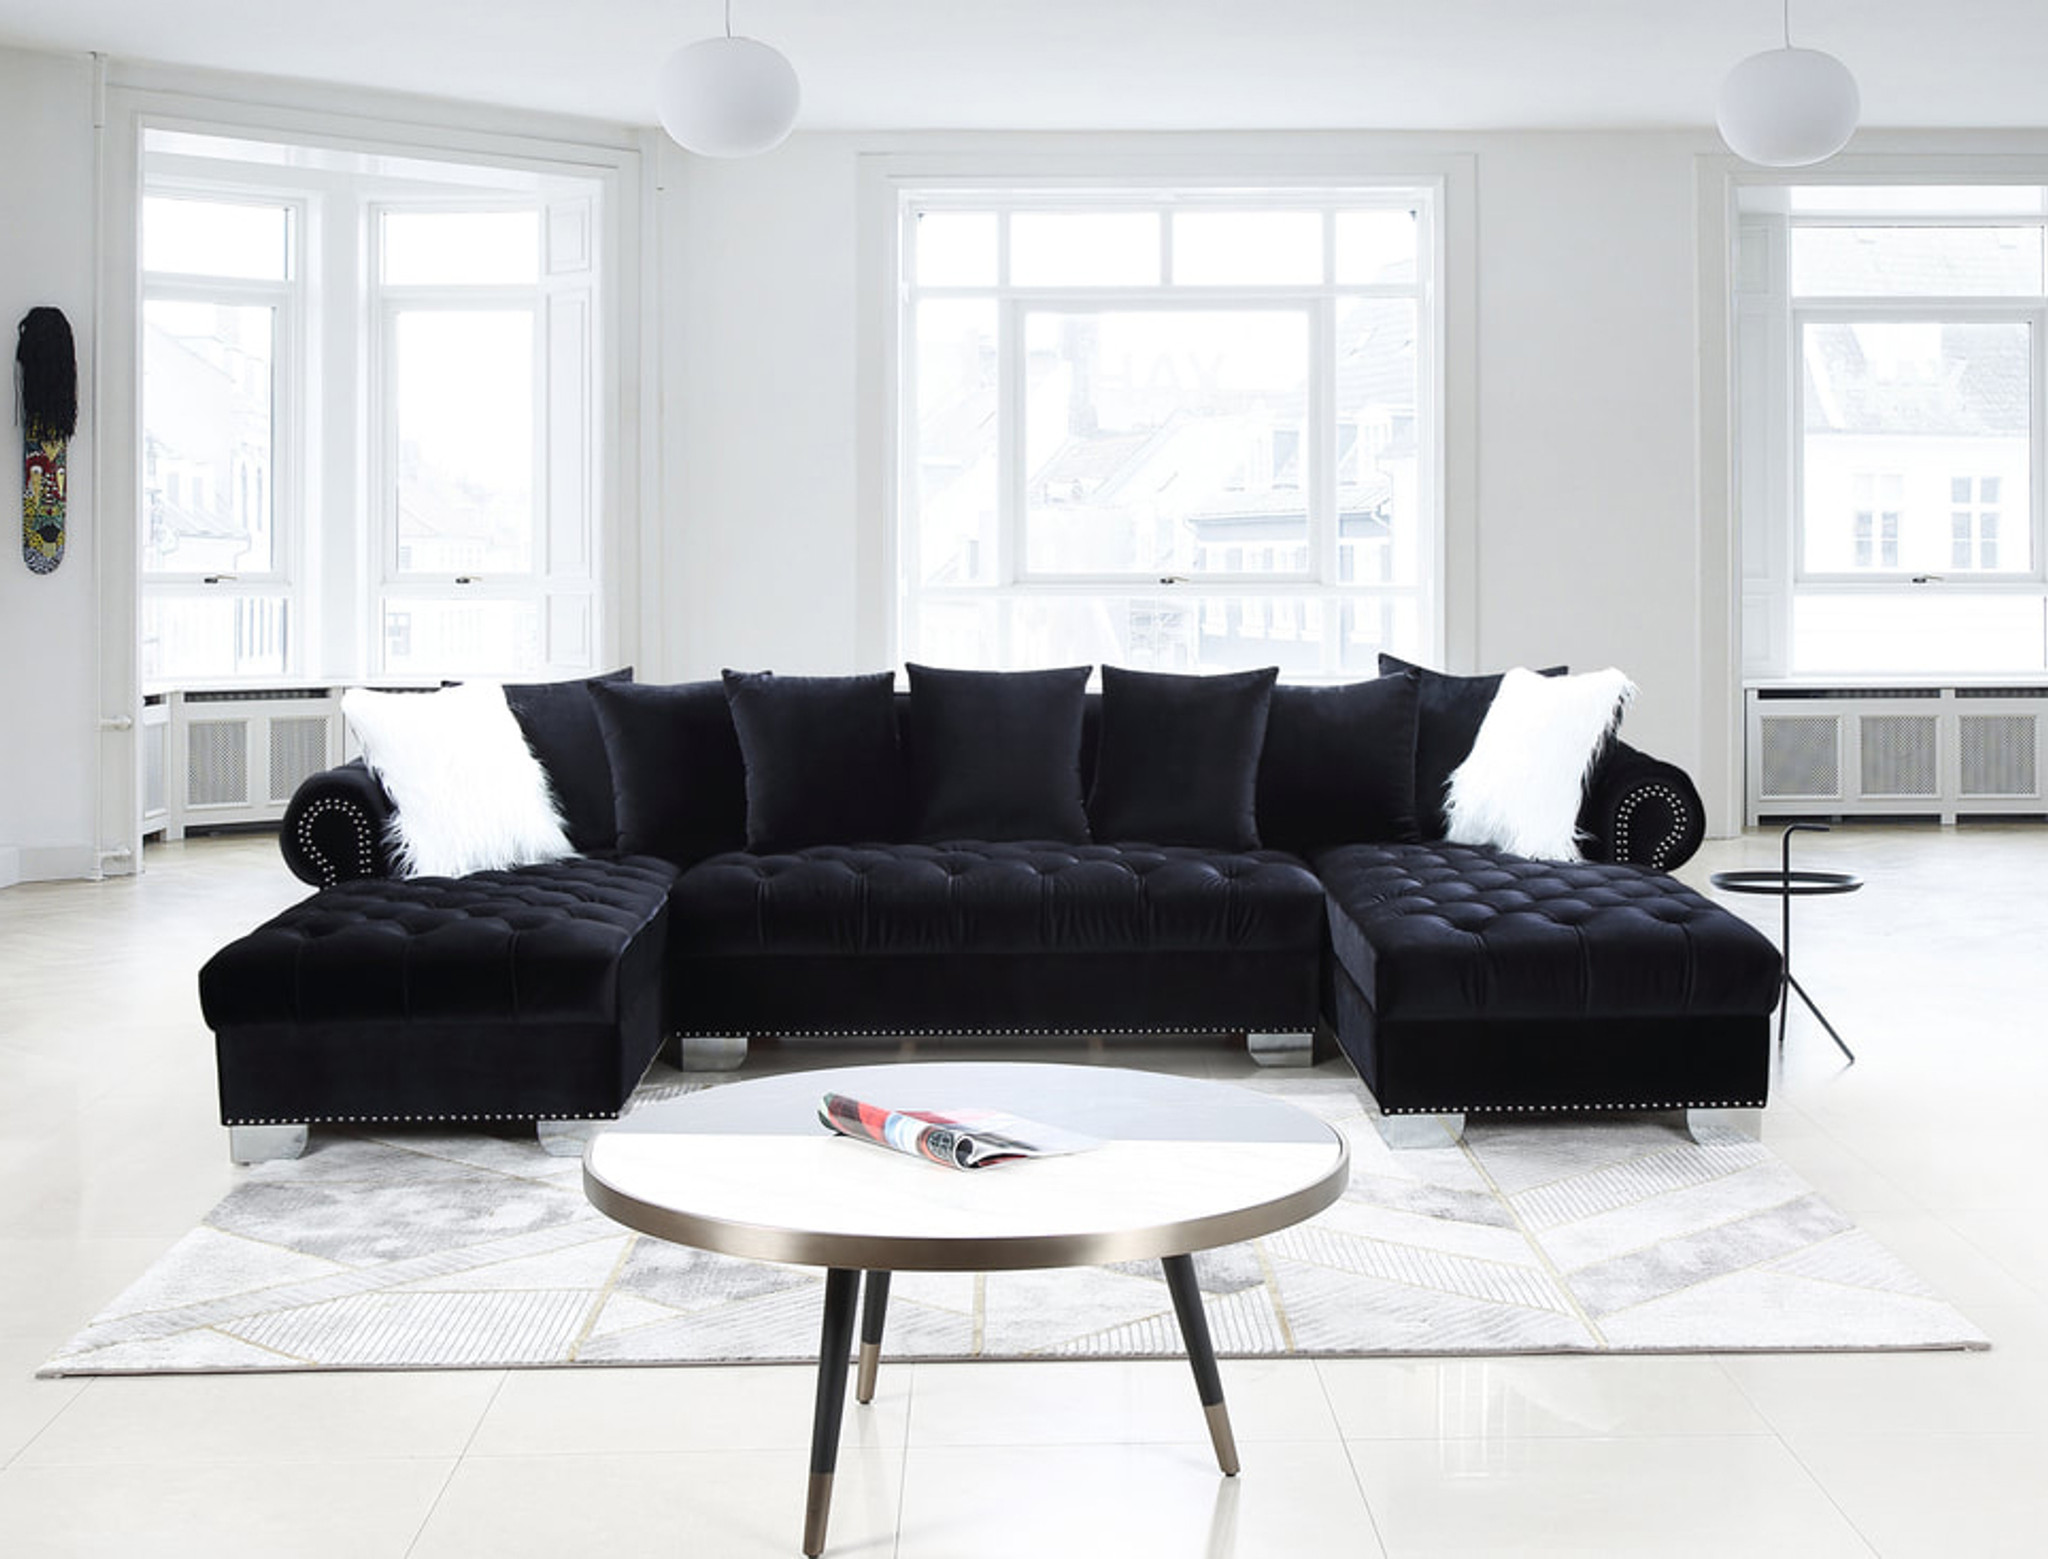 3 Pcs Kim Sectional Sofa And Loveseat In Black Color With Accent Pillows Happy Home Industries Houston Texas